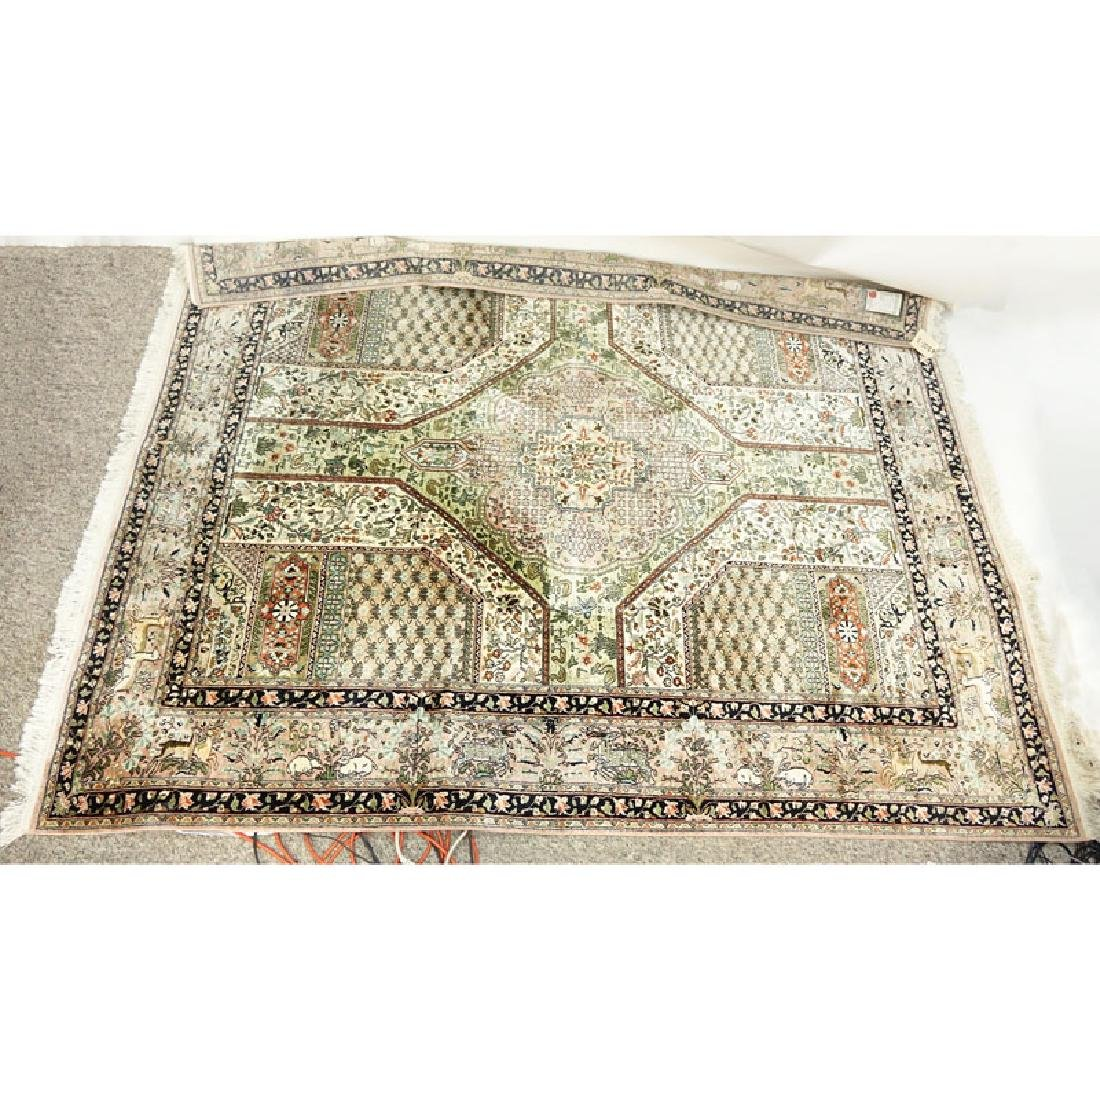 Large Persian Style Silk Rug. Label attached on